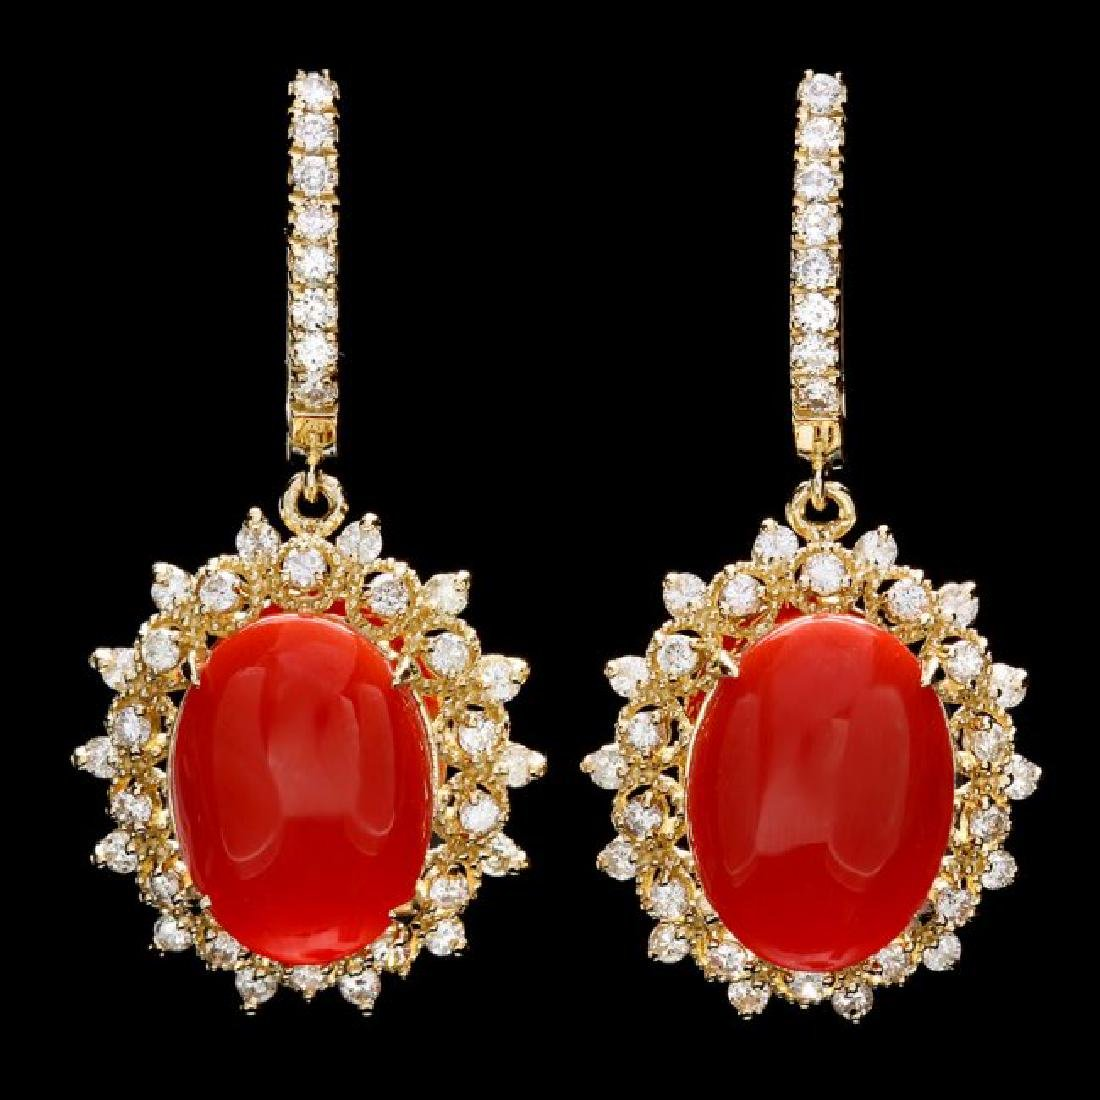 14k Gold 9.50ct Coral 1.65ct Diamond Earrings